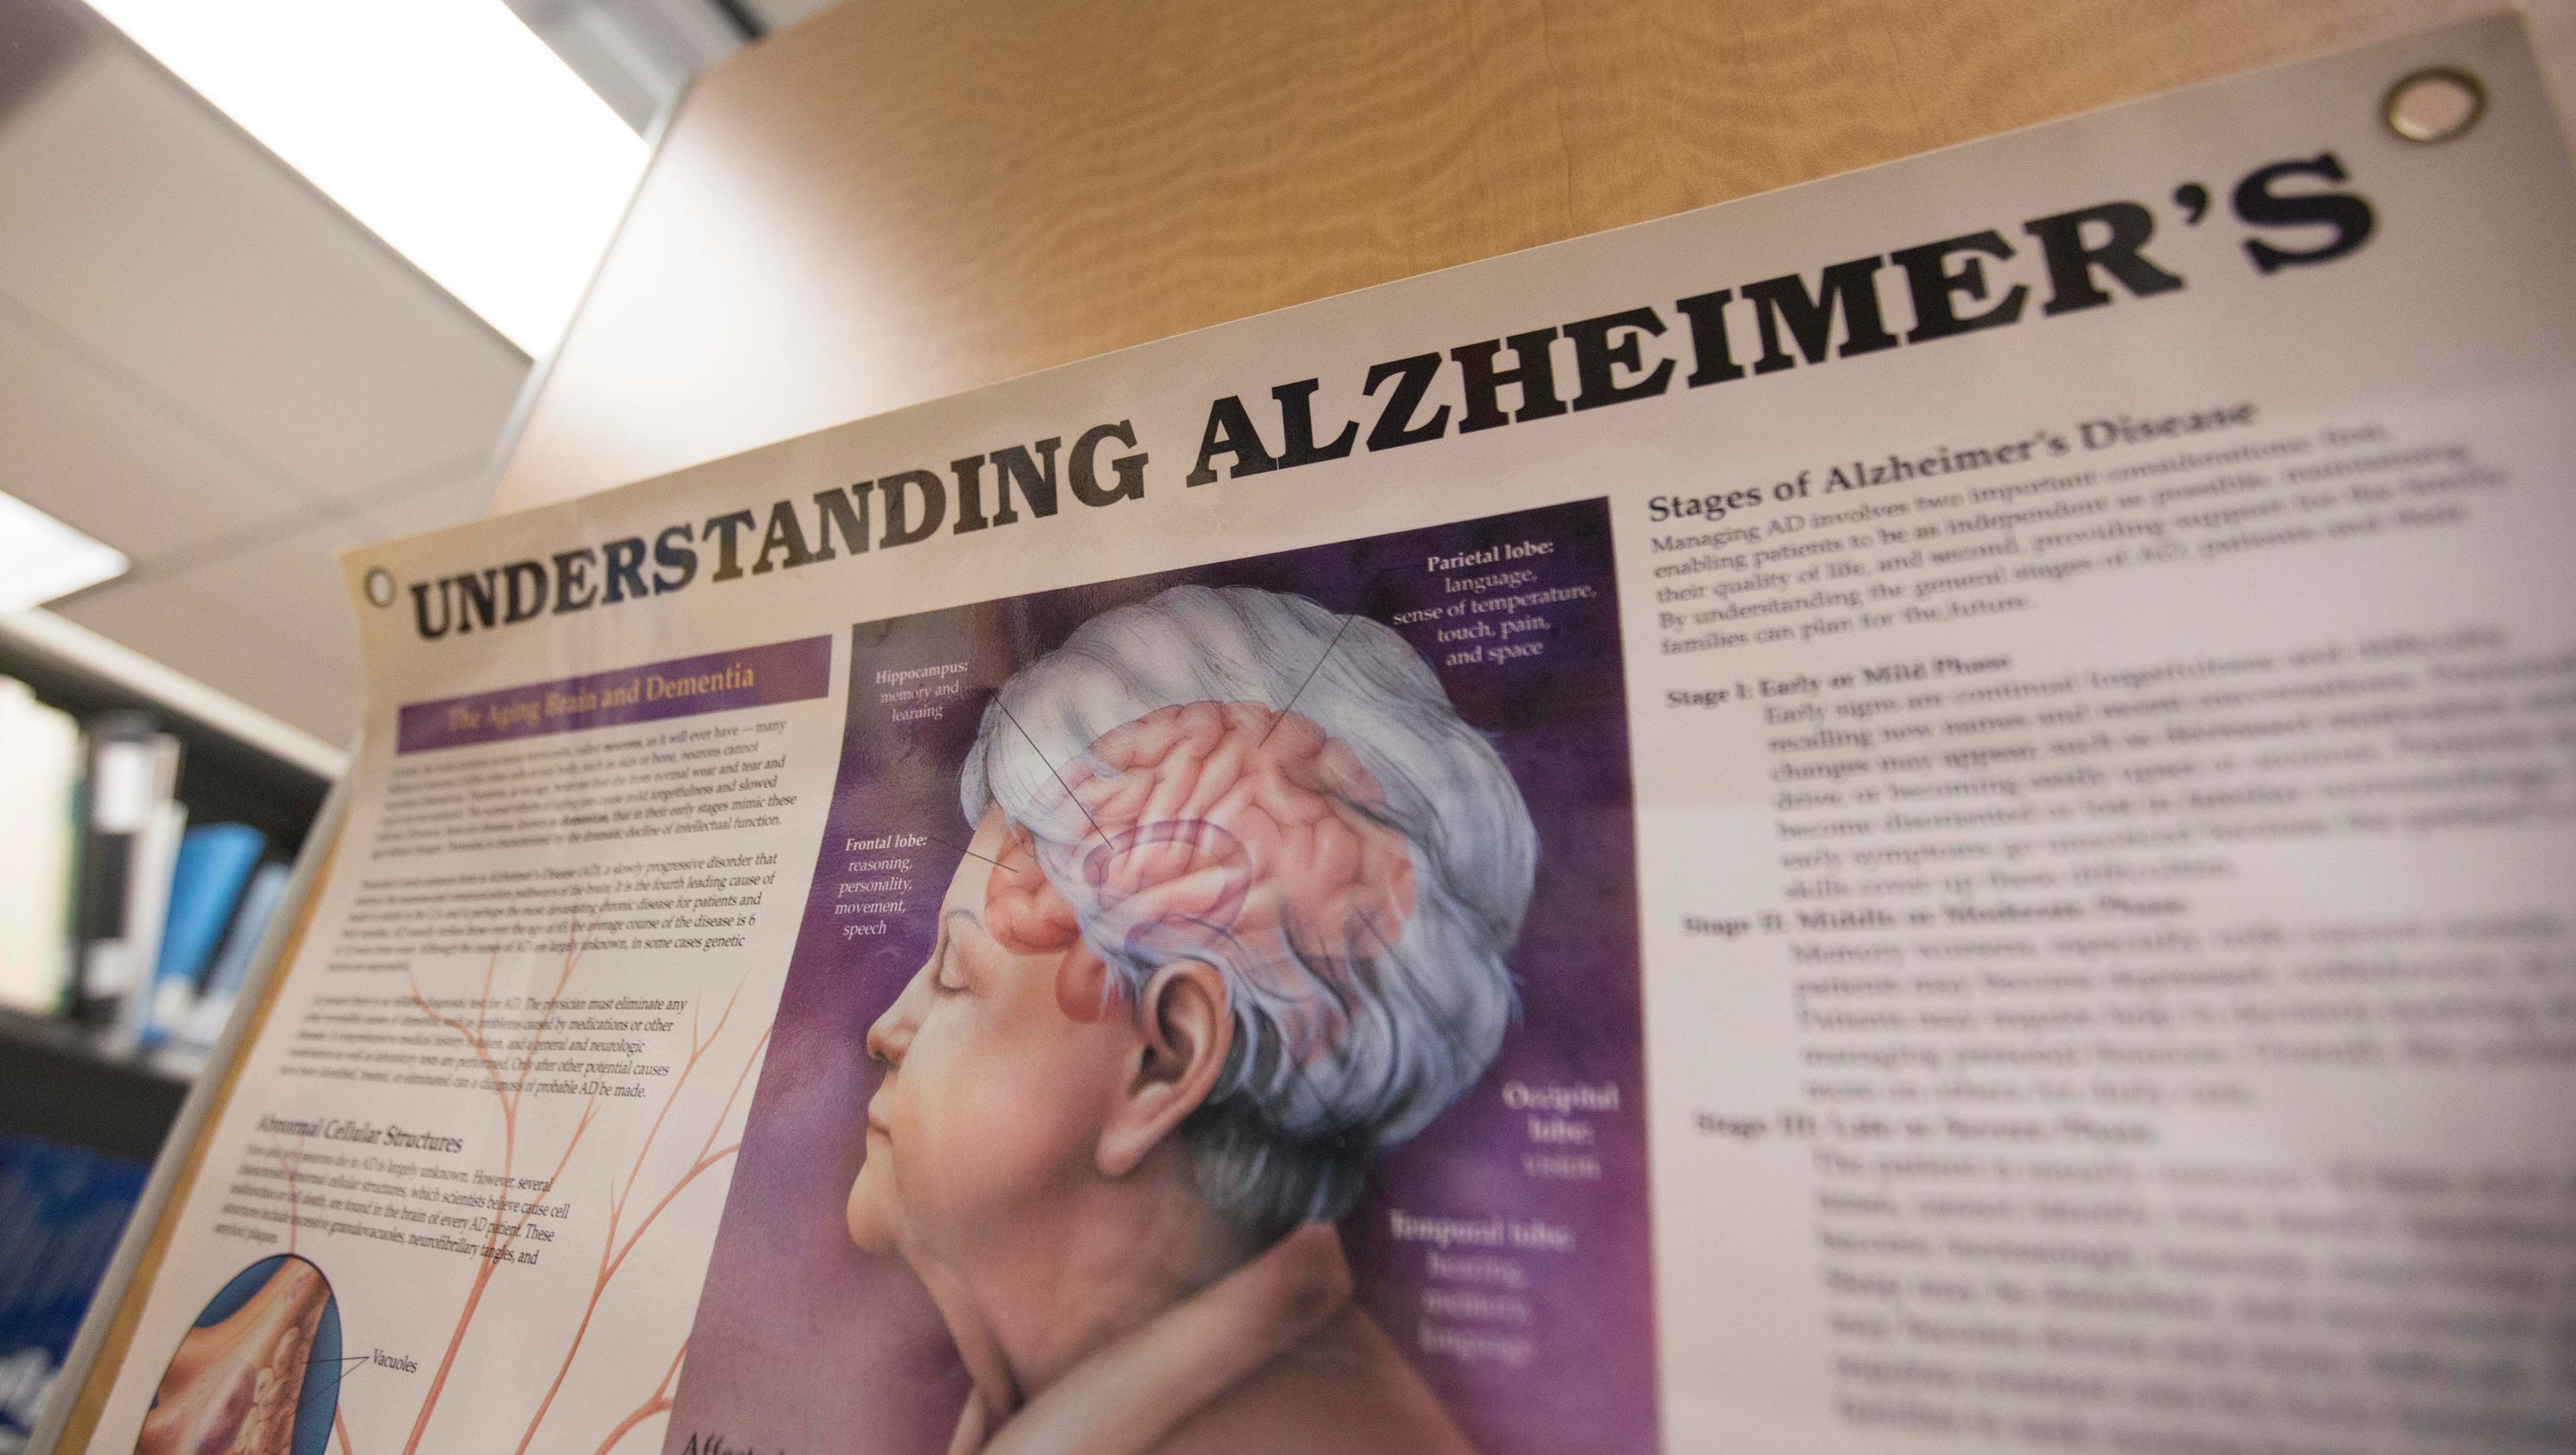 Alzheimer's disease papers